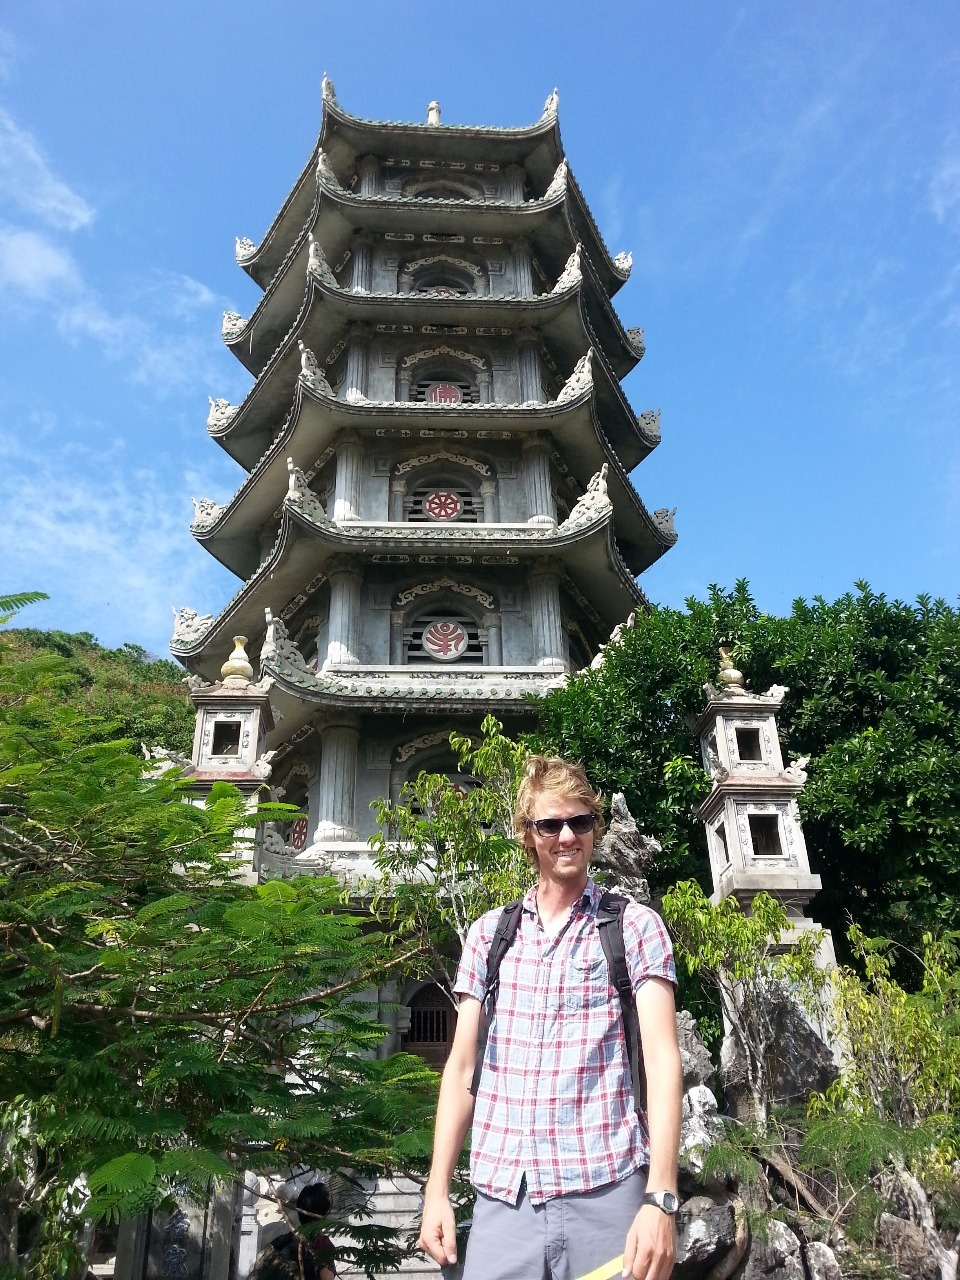 One more pagoda- Marble Mountain